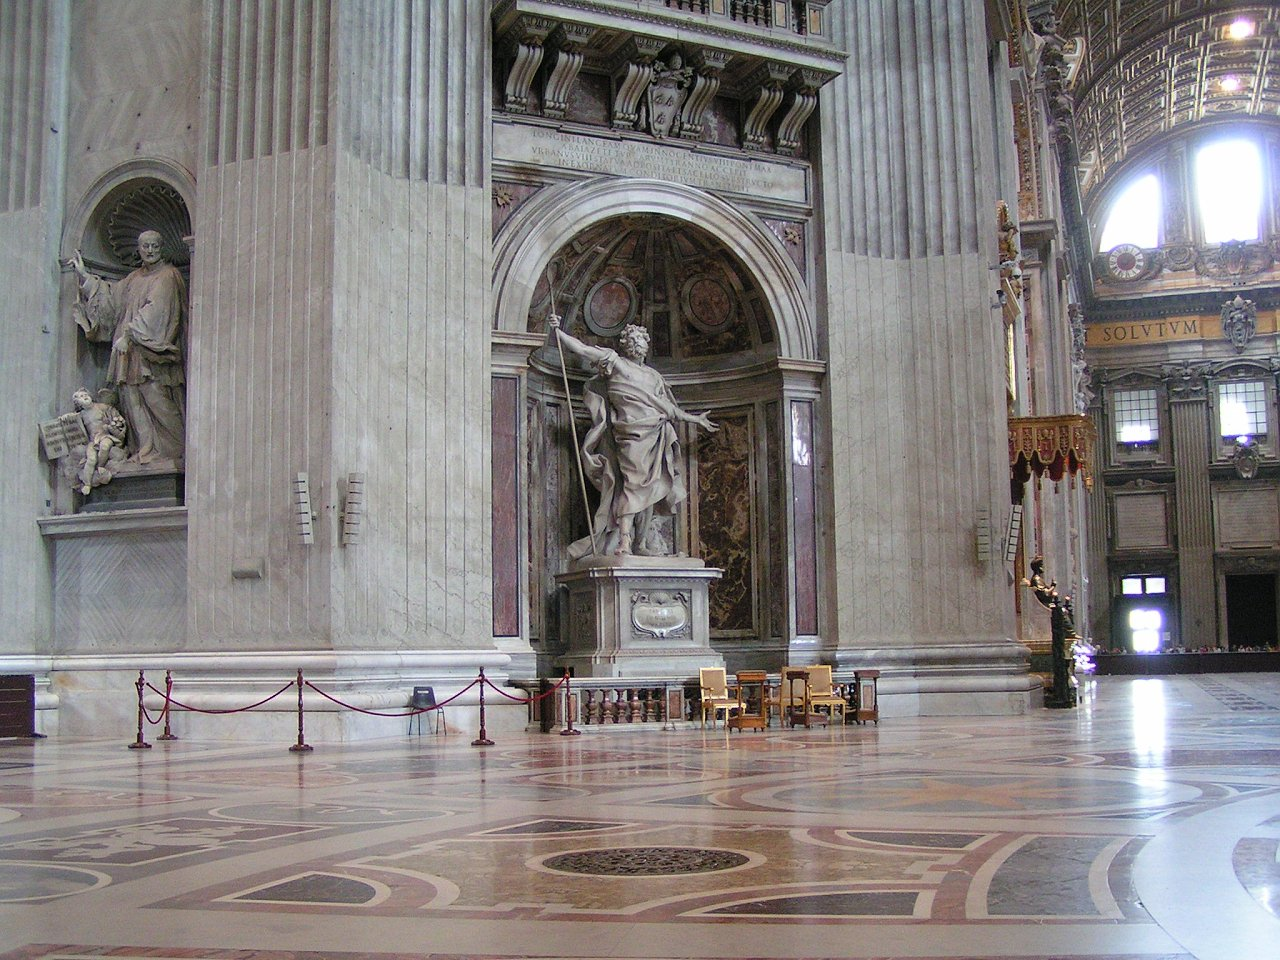 St. Peter's Basilica, Rome Attractions, Best Places to visit in Rome 4